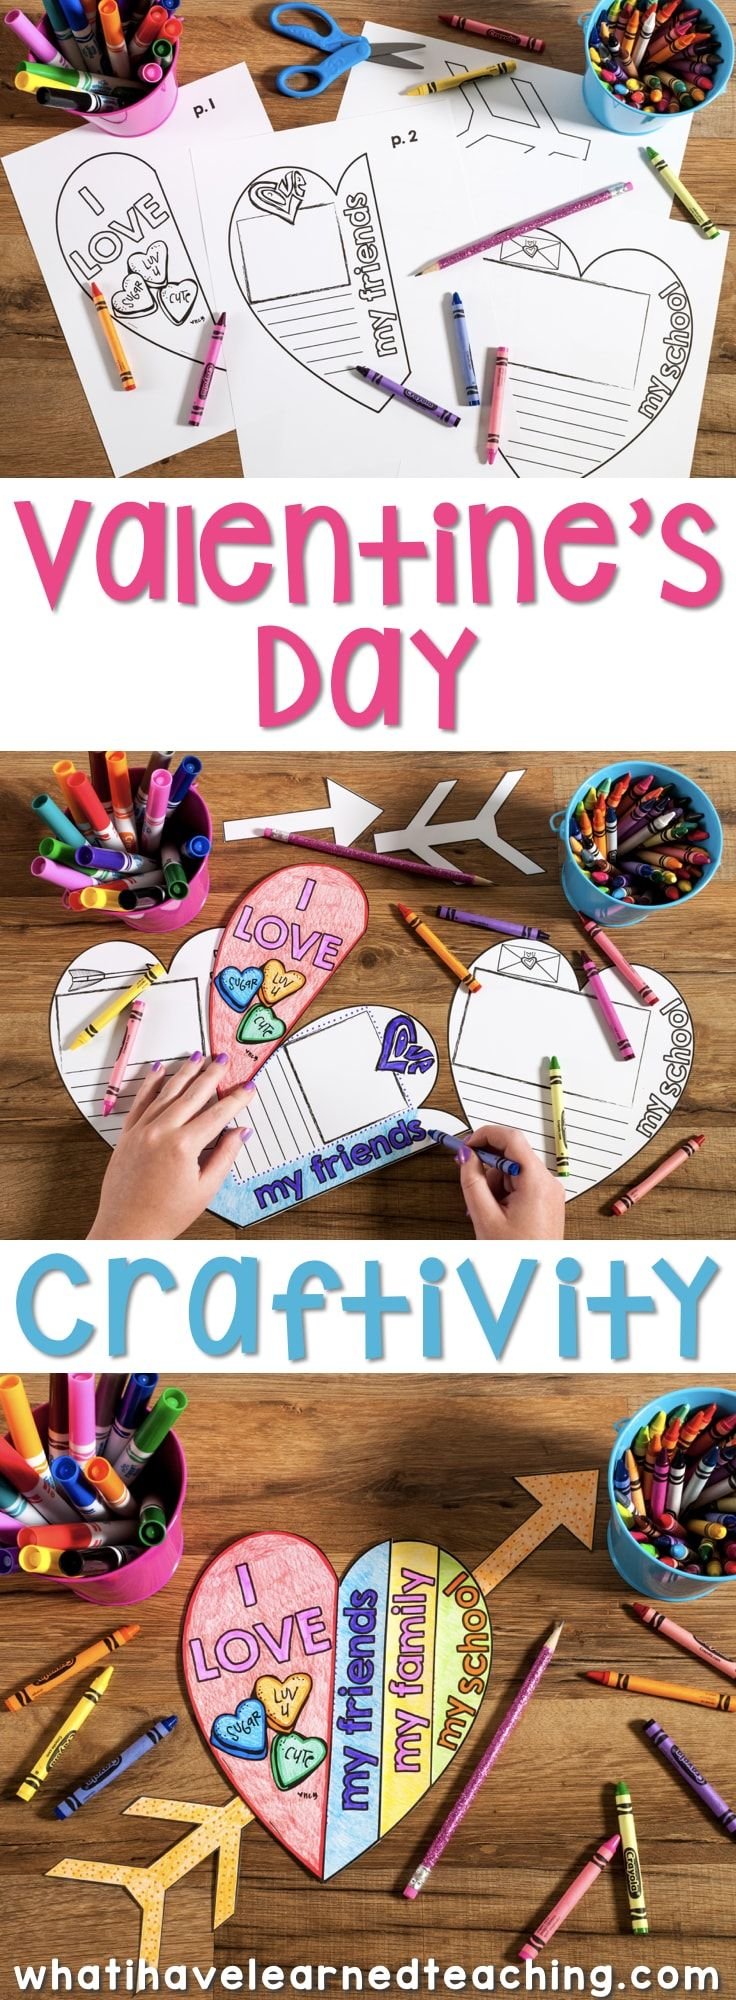 A Valentine's Day Craftivity where students reflect on what makes themselves, their friends, family and school special. This is the perfect classroom activity leading up to Valentine's Day.